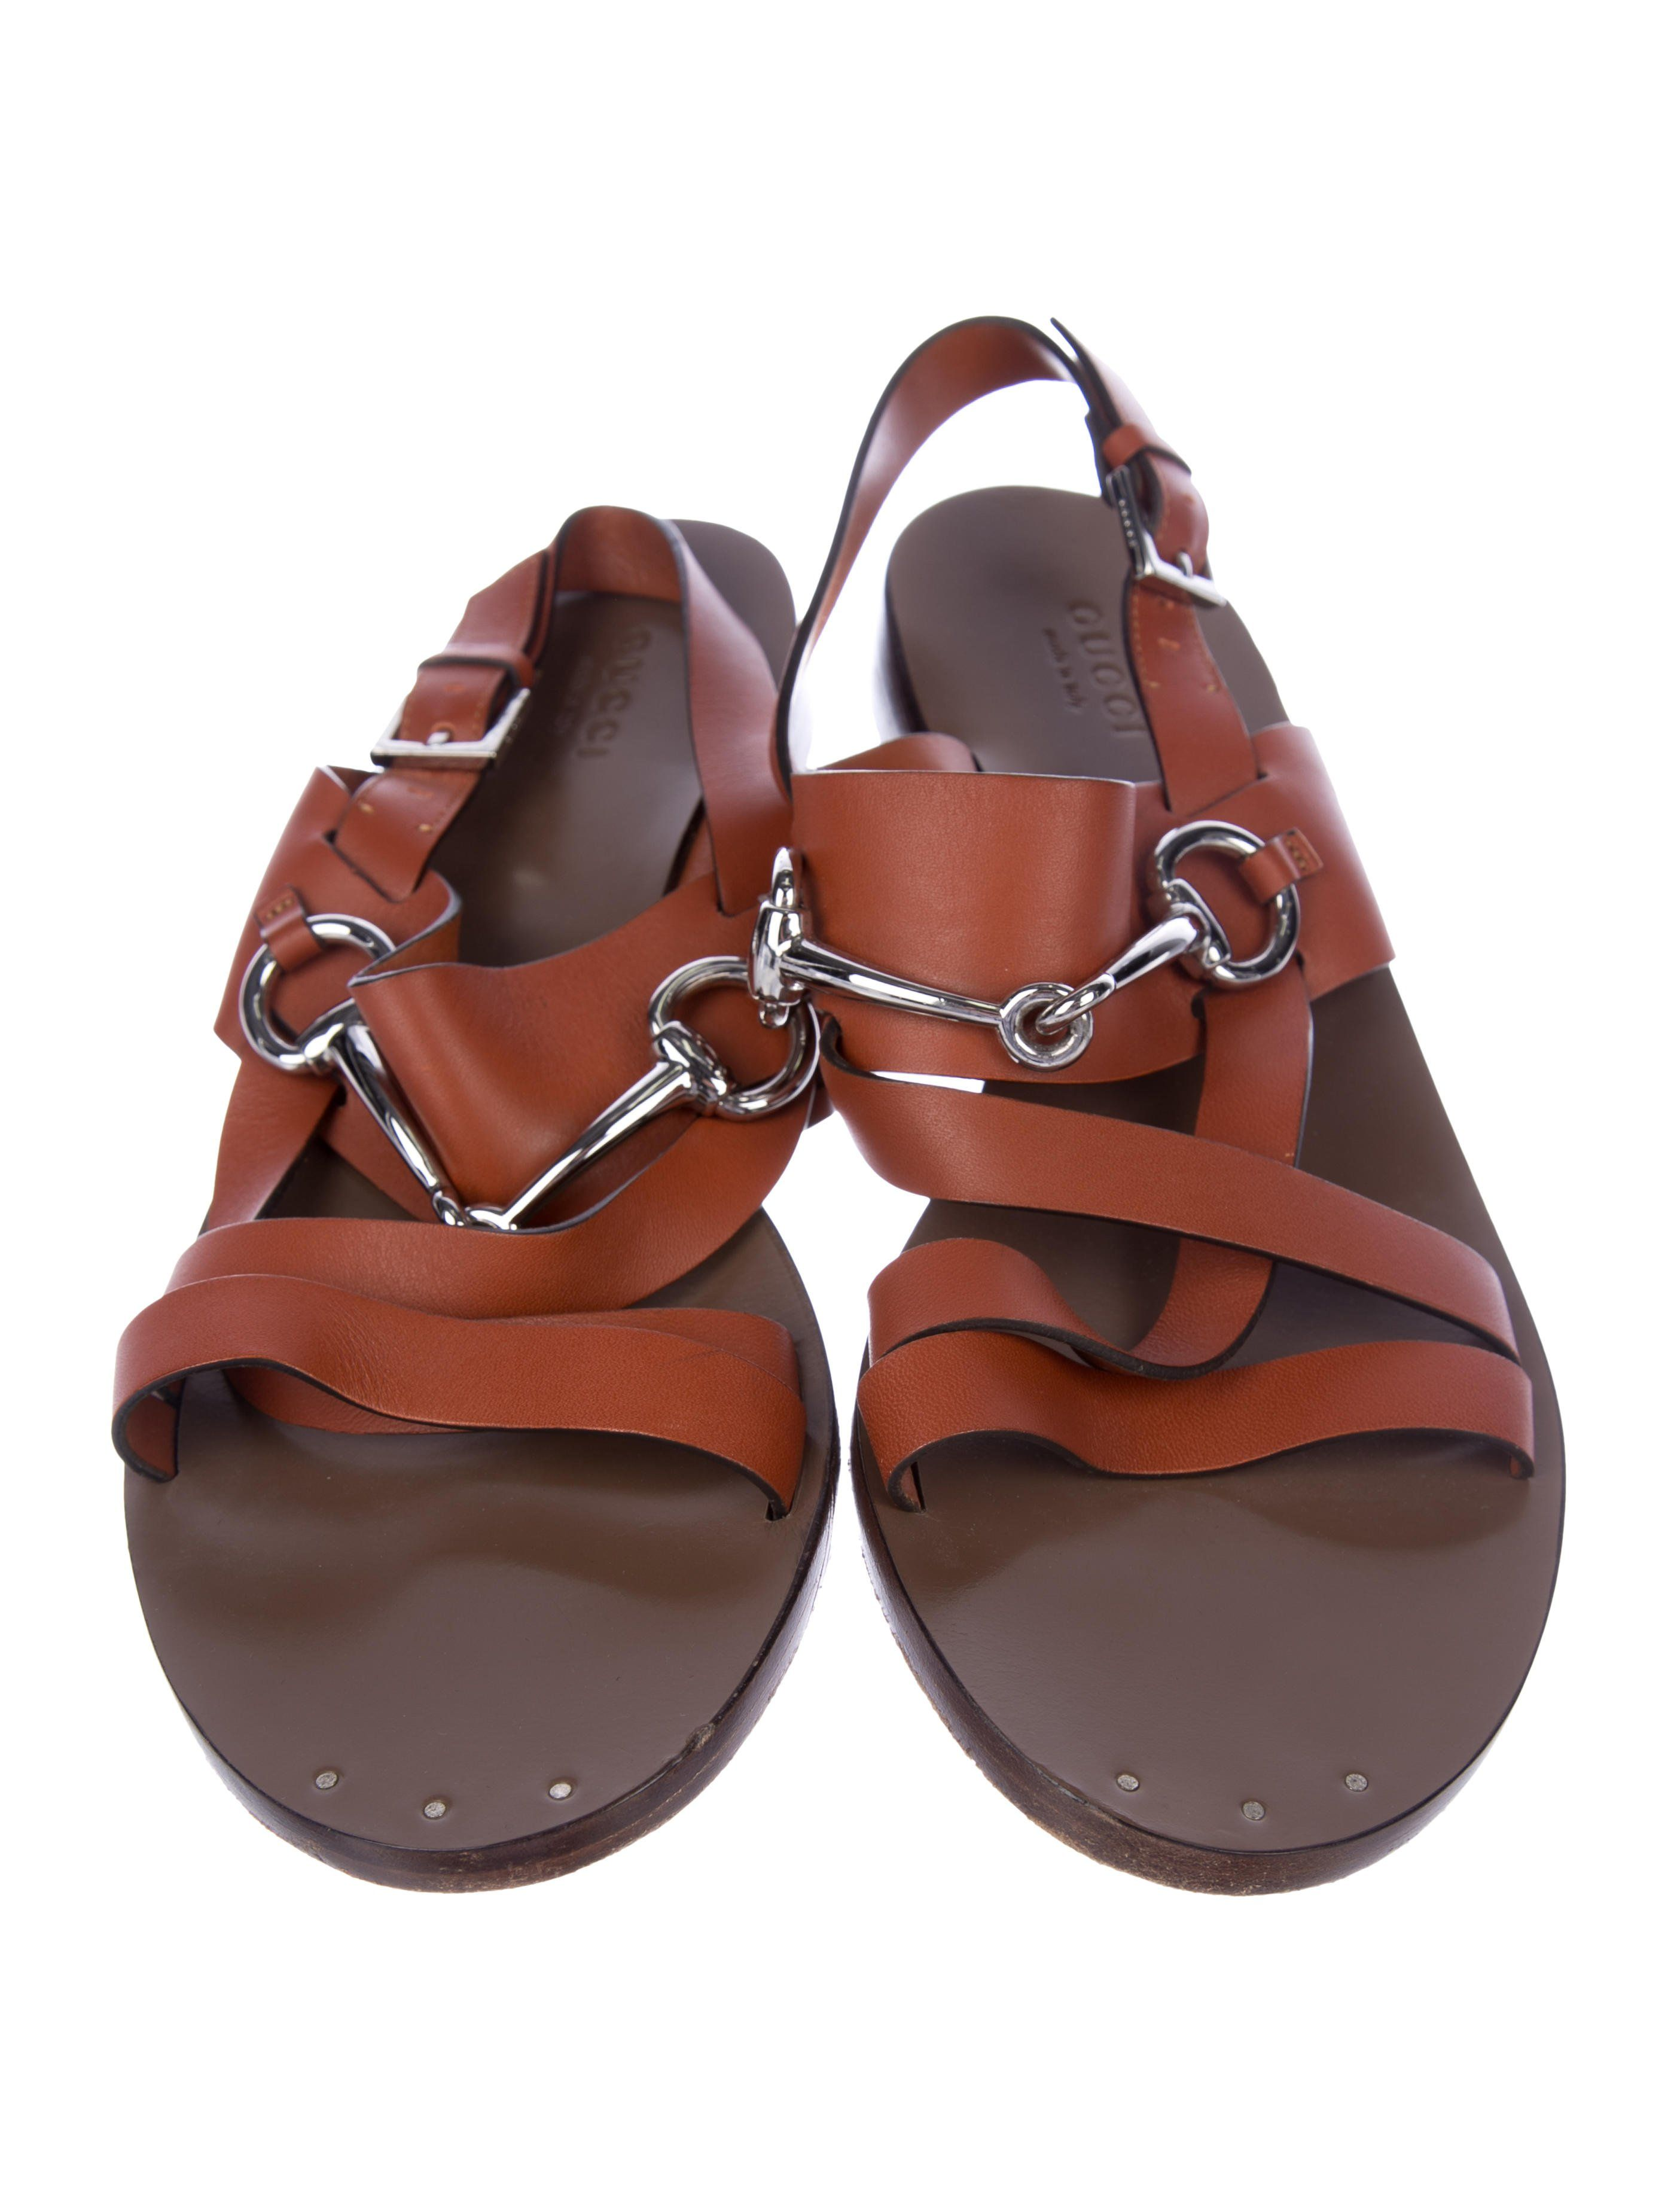 8969c78d5 Cinnamon leather Gucci slingback sandals with silver-tone horsebit  embellishments at vamps